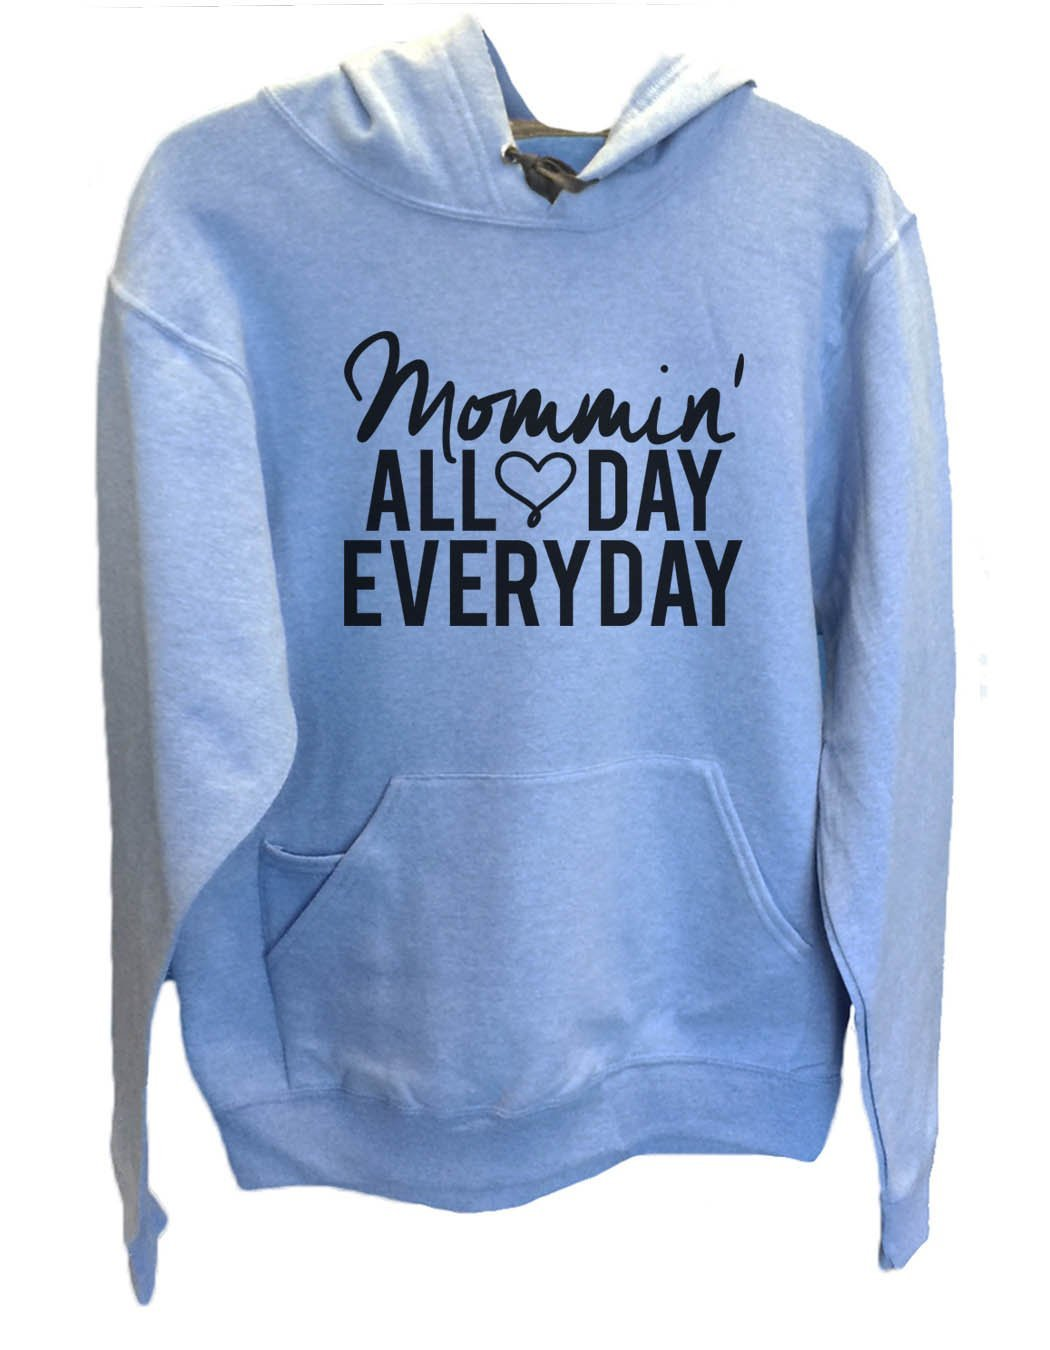 UNISEX HOODIE - Mommin' All Day Every Day - FUNNY MENS AND WOMENS HOODED SWEATSHIRTS - 2143 Funny Shirt Small / North Carolina Blue